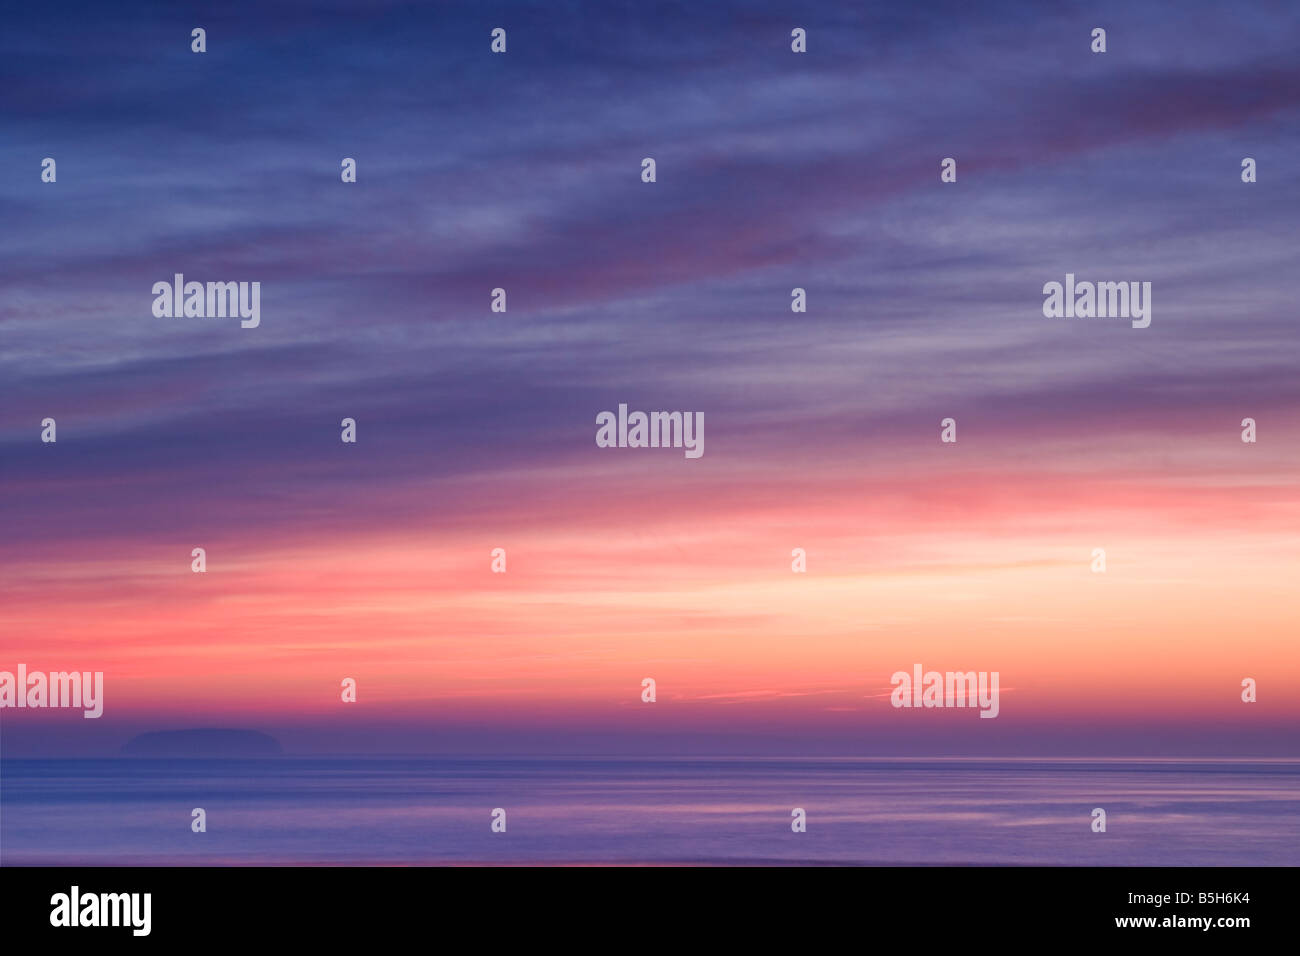 A pastel coloured sunset taken at Sandpoint near Weston Super Mare with Steepholm Island just visible in the background - Stock Image